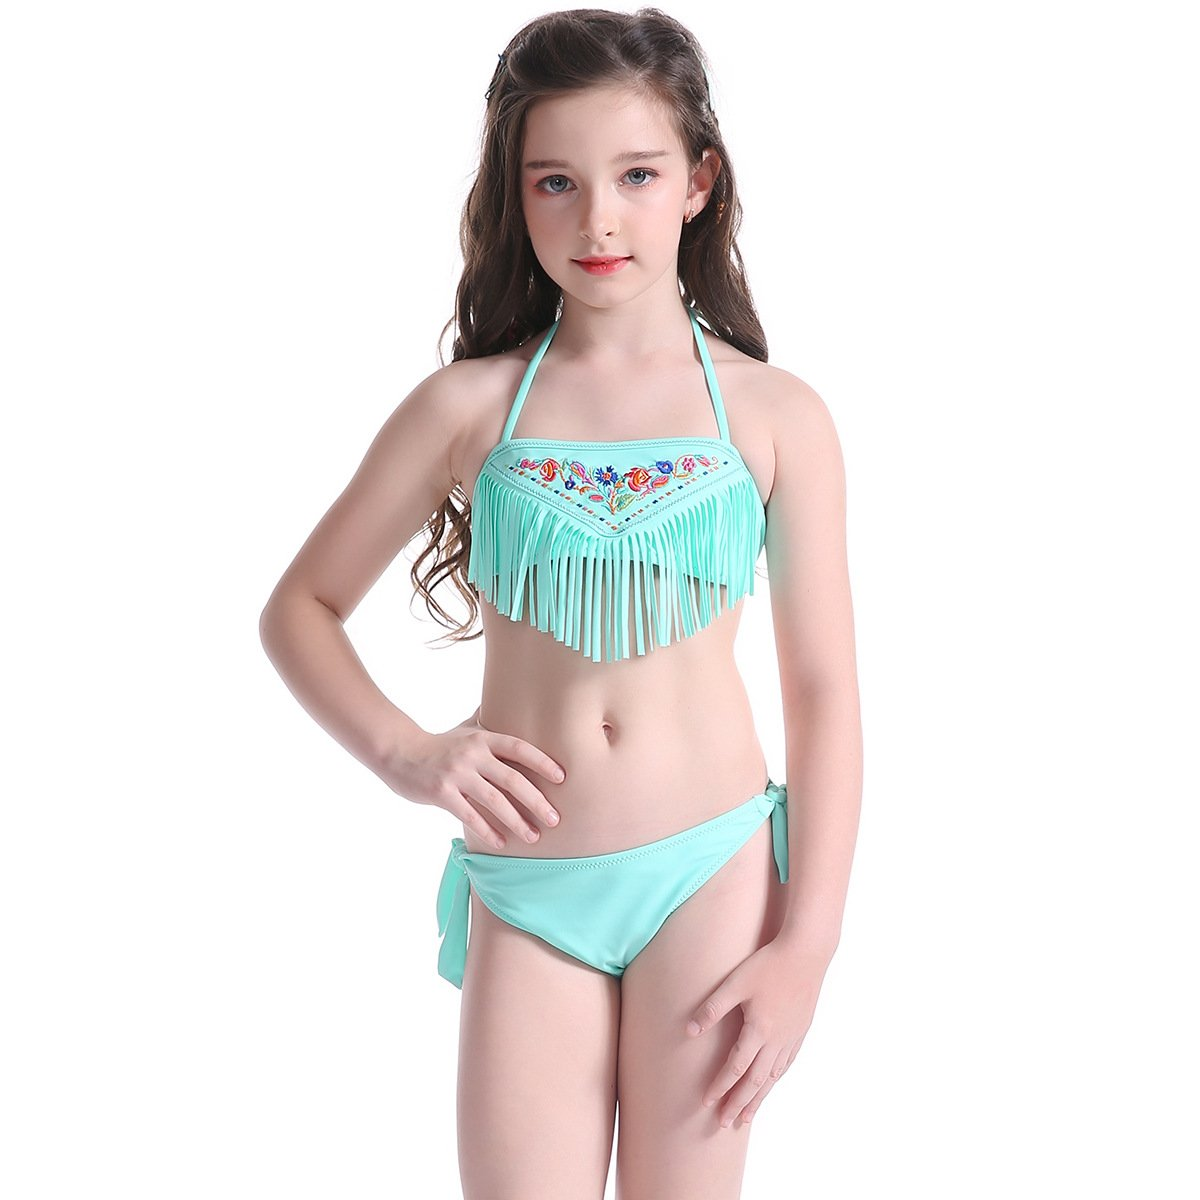 CHITONE Girl's Two Piece Swimsuit Summer Halter Bikini Swimwear Bathing Suit